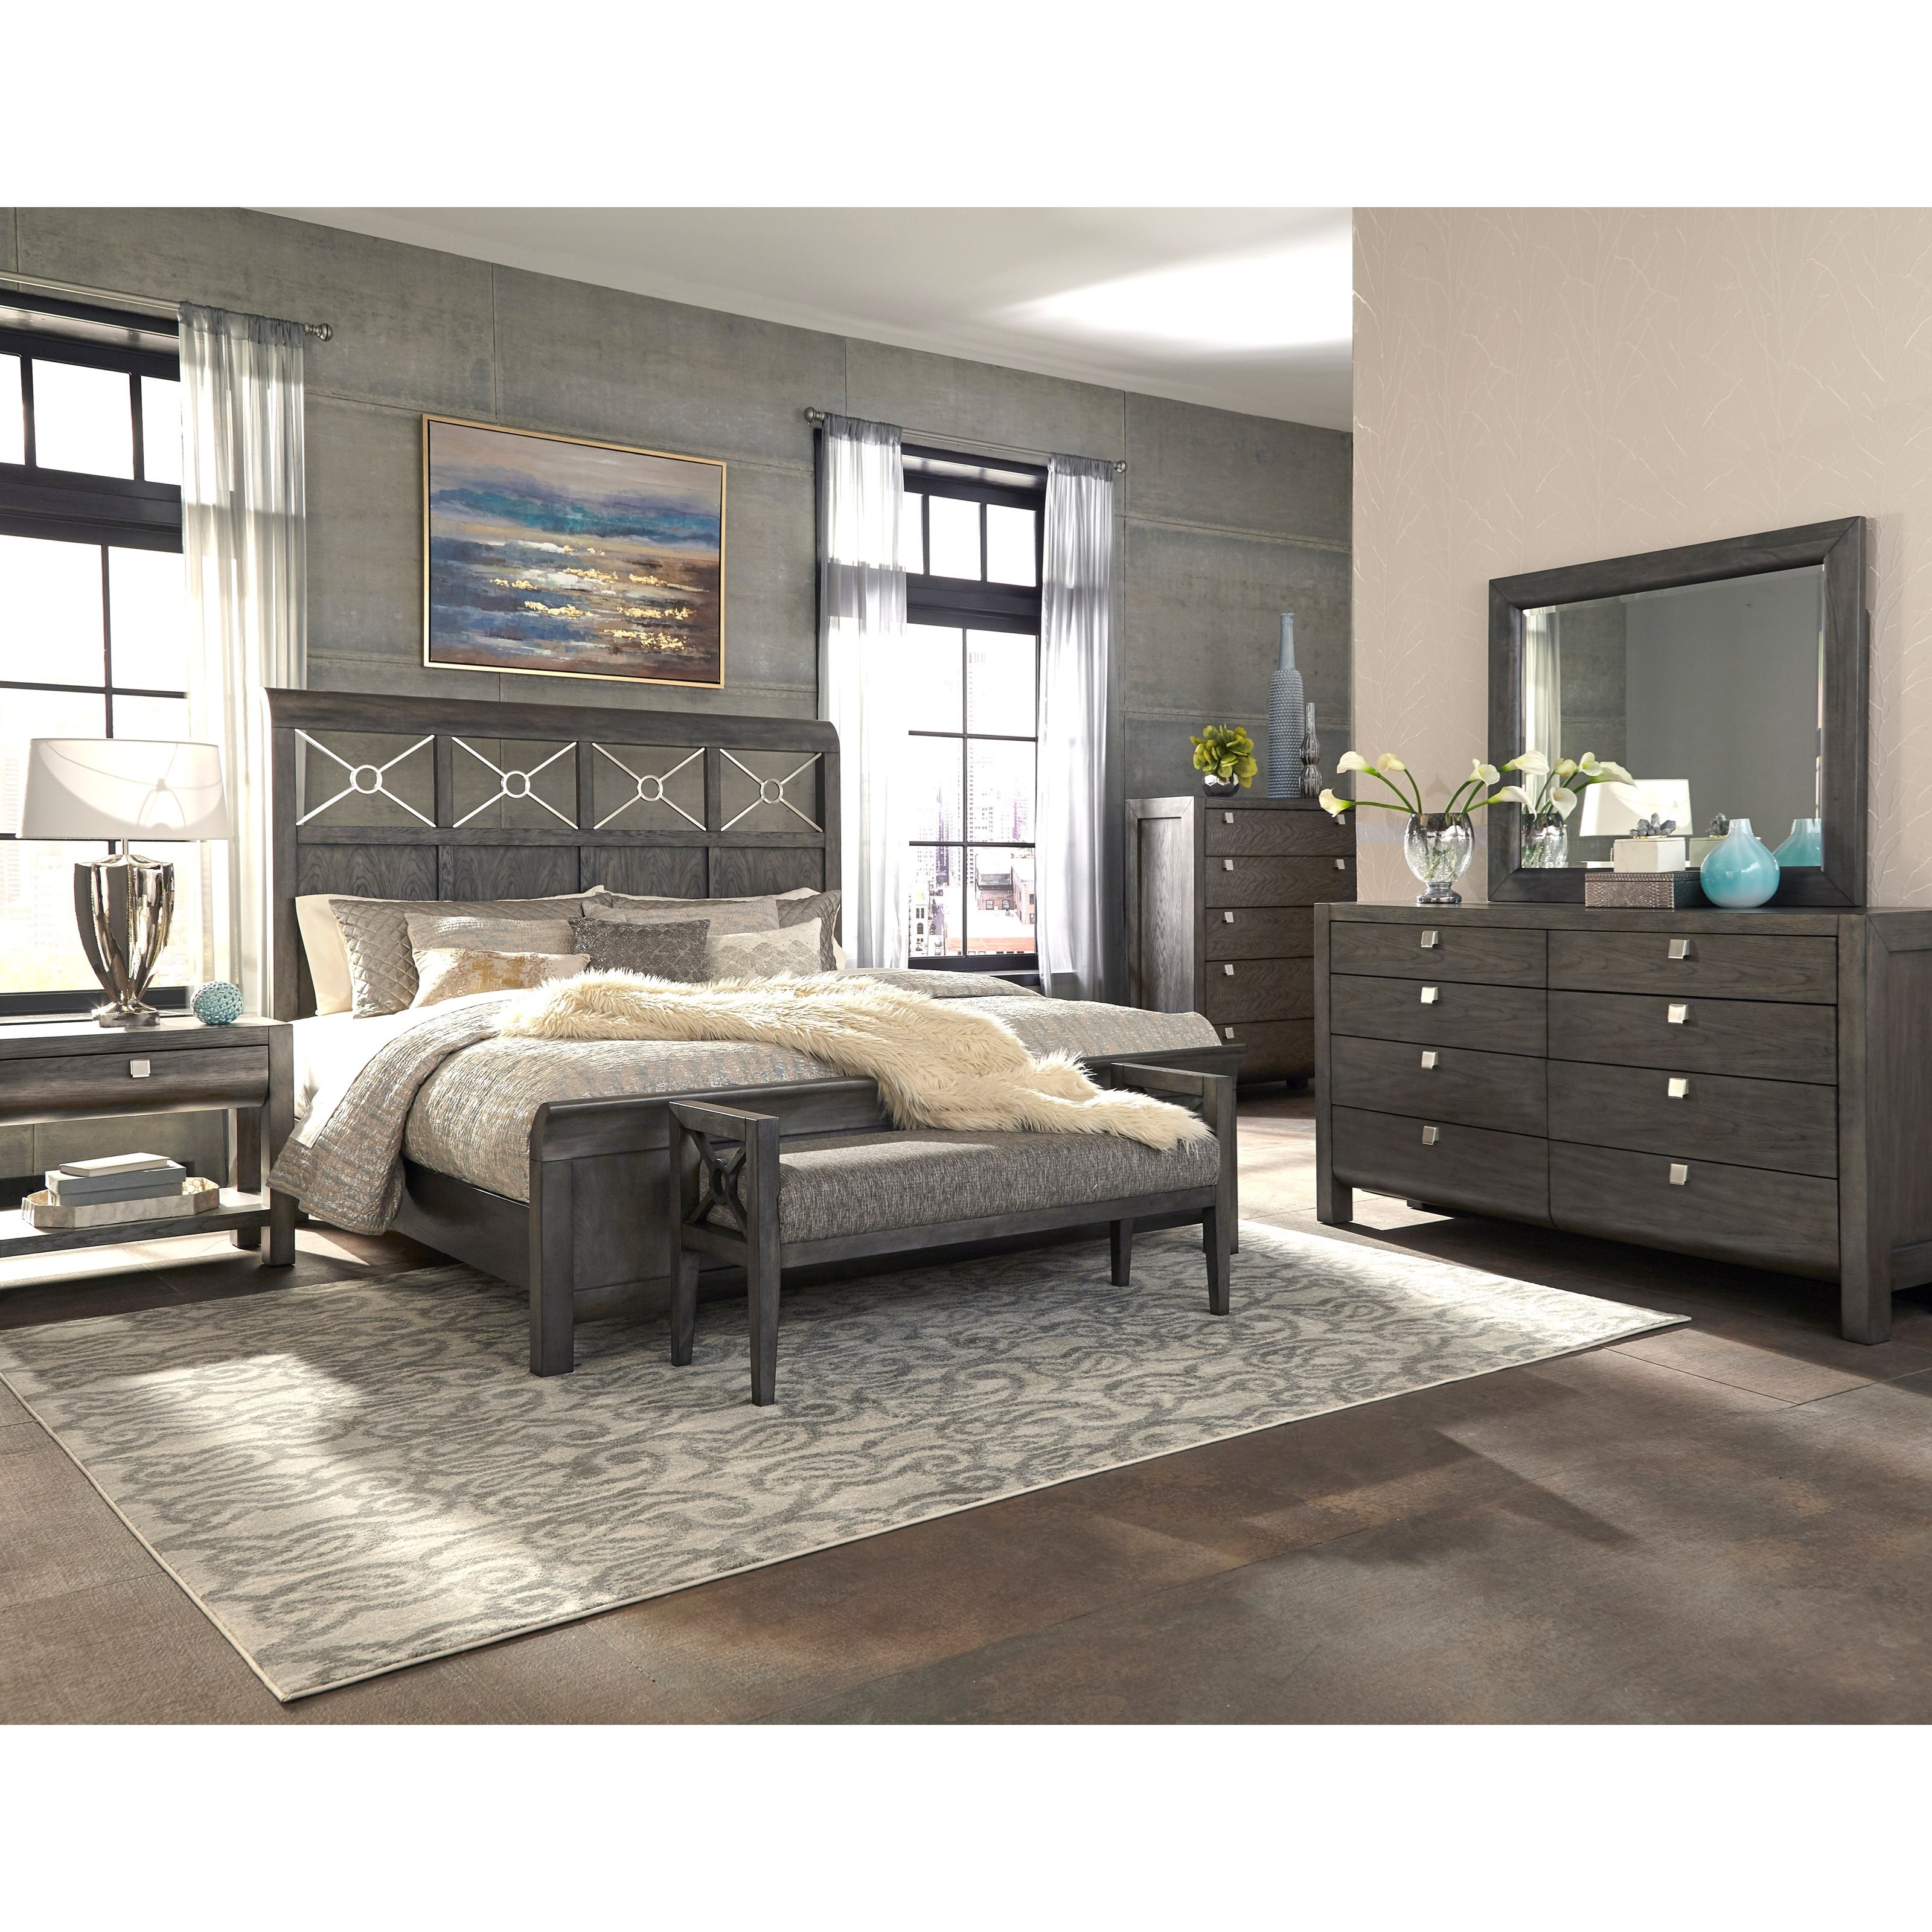 Trisha yearwood home collection by klaussner music city for Bedroom furniture 37027